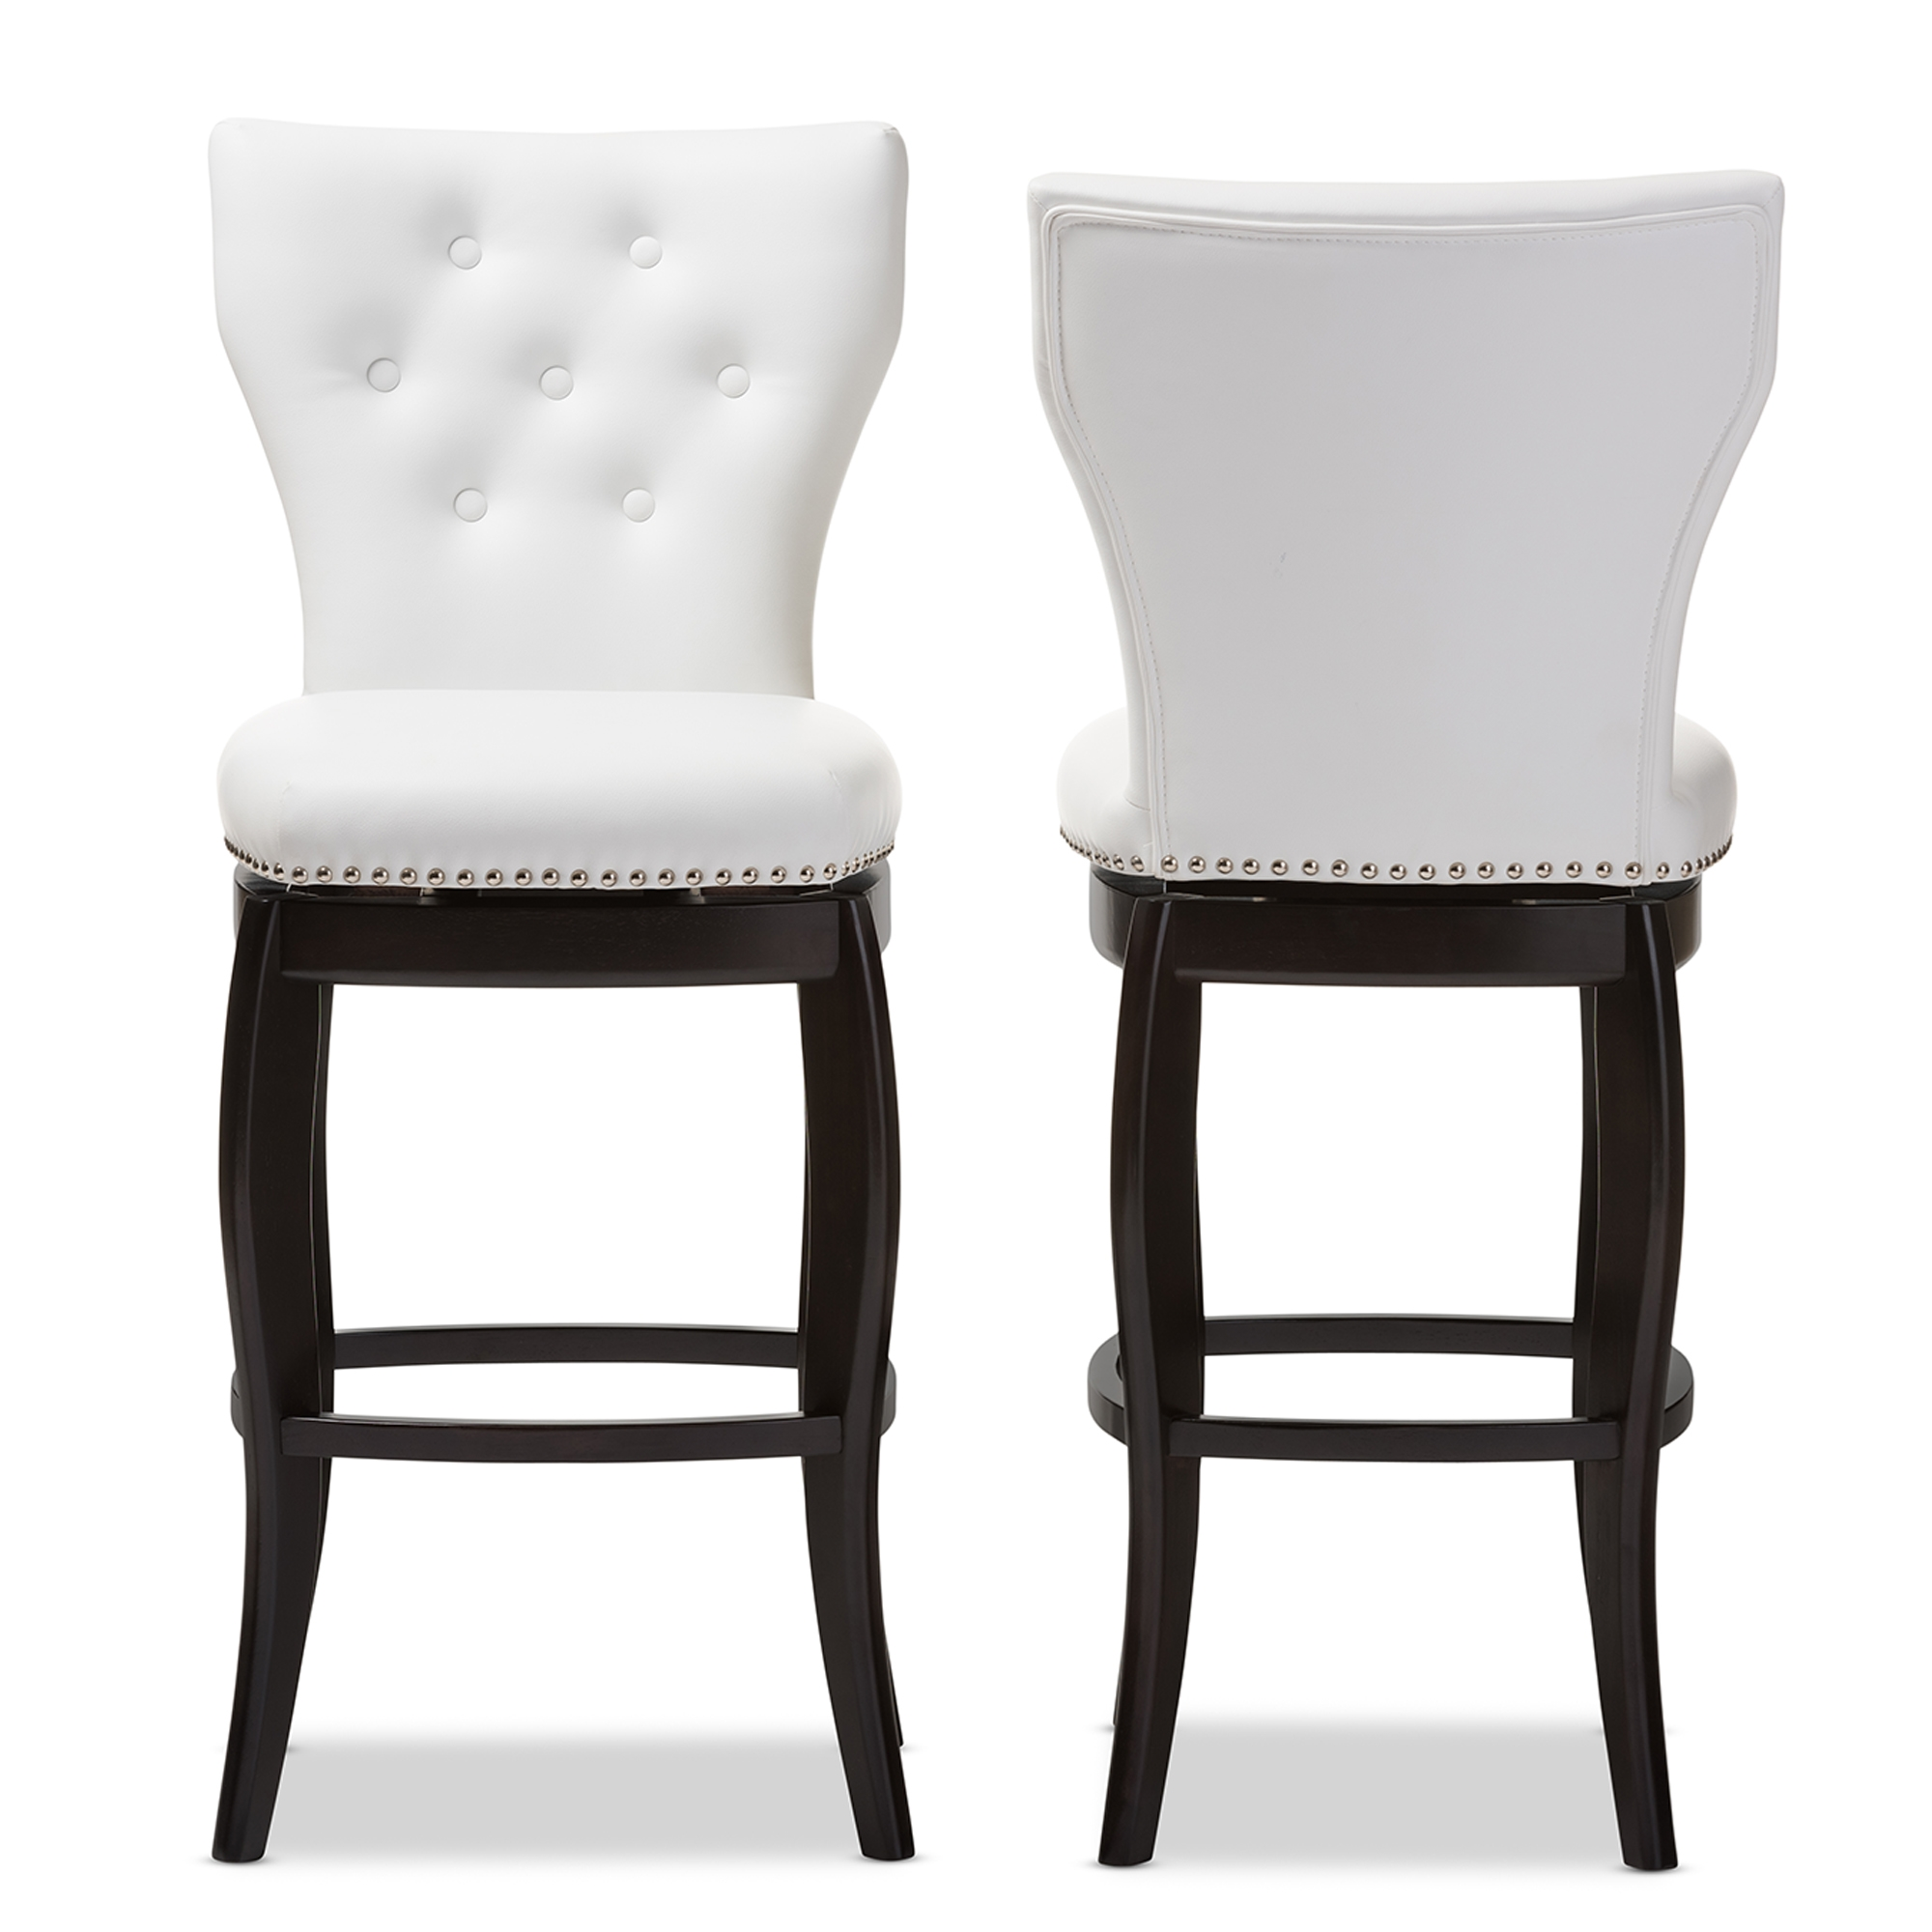 Baxton Studio Leonice Modern and Contemporary White Faux Leather Upholstered Button-tufted 29-Inch Swivel Bar Stool  sc 1 st  Baxton Studio Outlet & Baxton Studio Leonice Modern and Contemporary White Faux Leather ... islam-shia.org